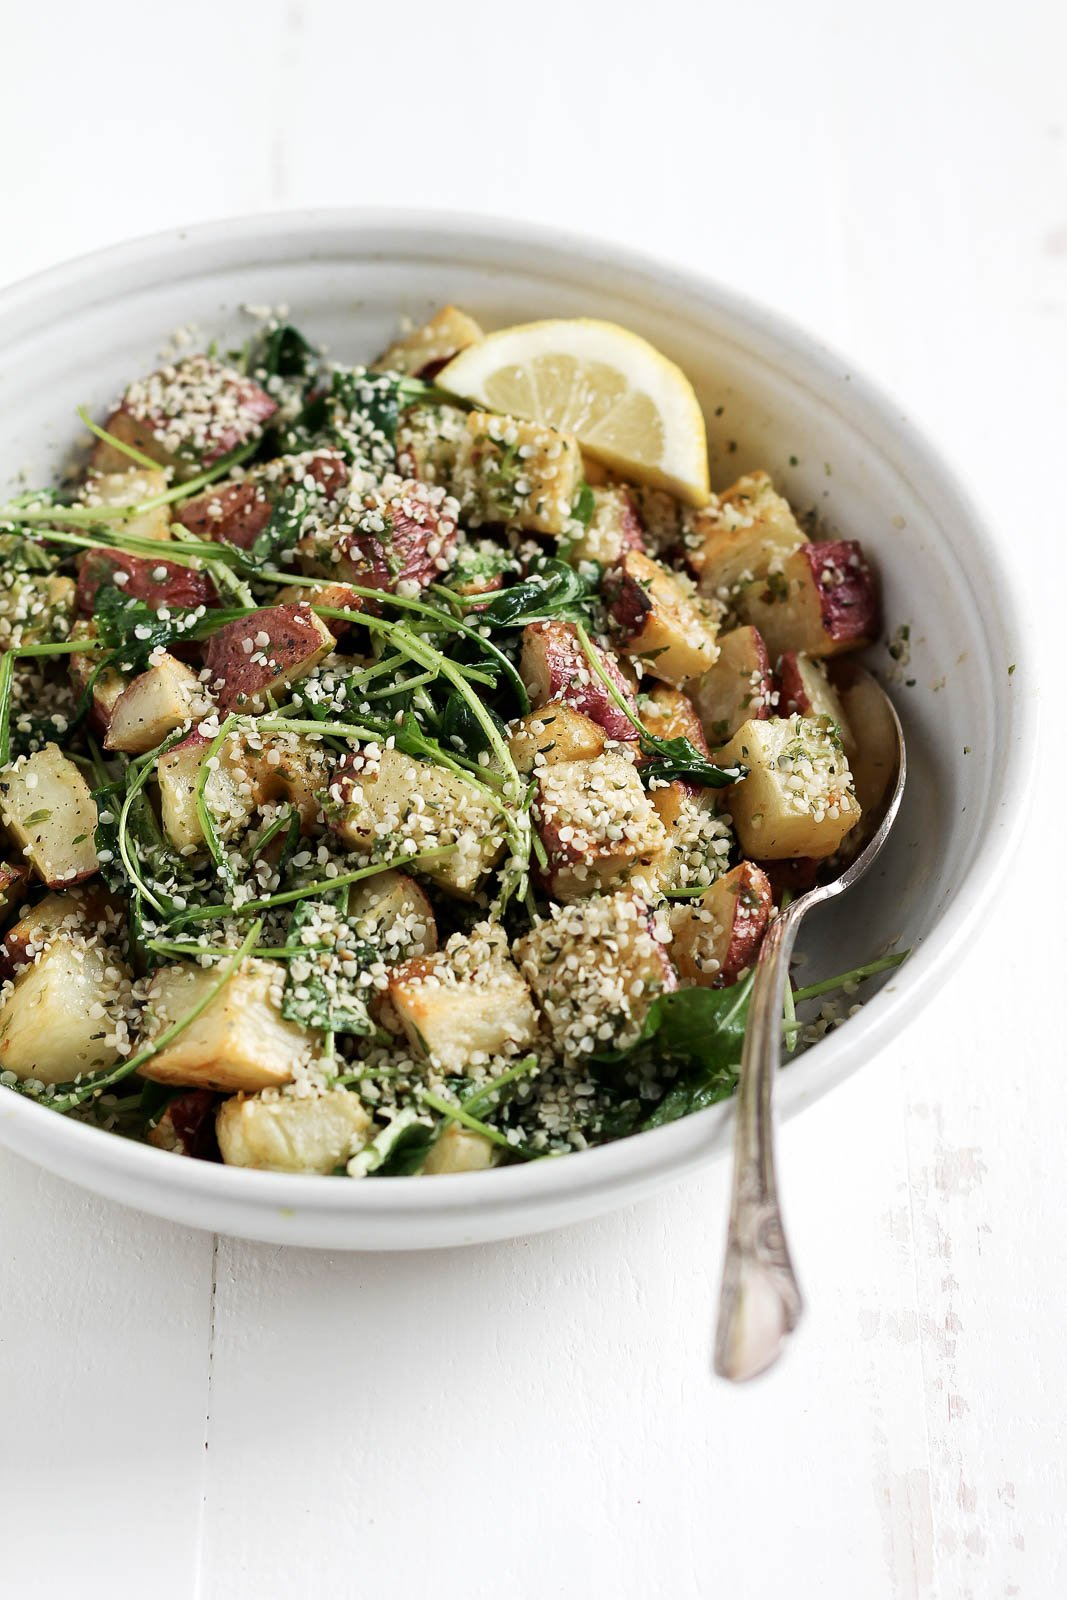 new potato salad to try: Roasted Garlic Basil Pesto Potatoes with ...